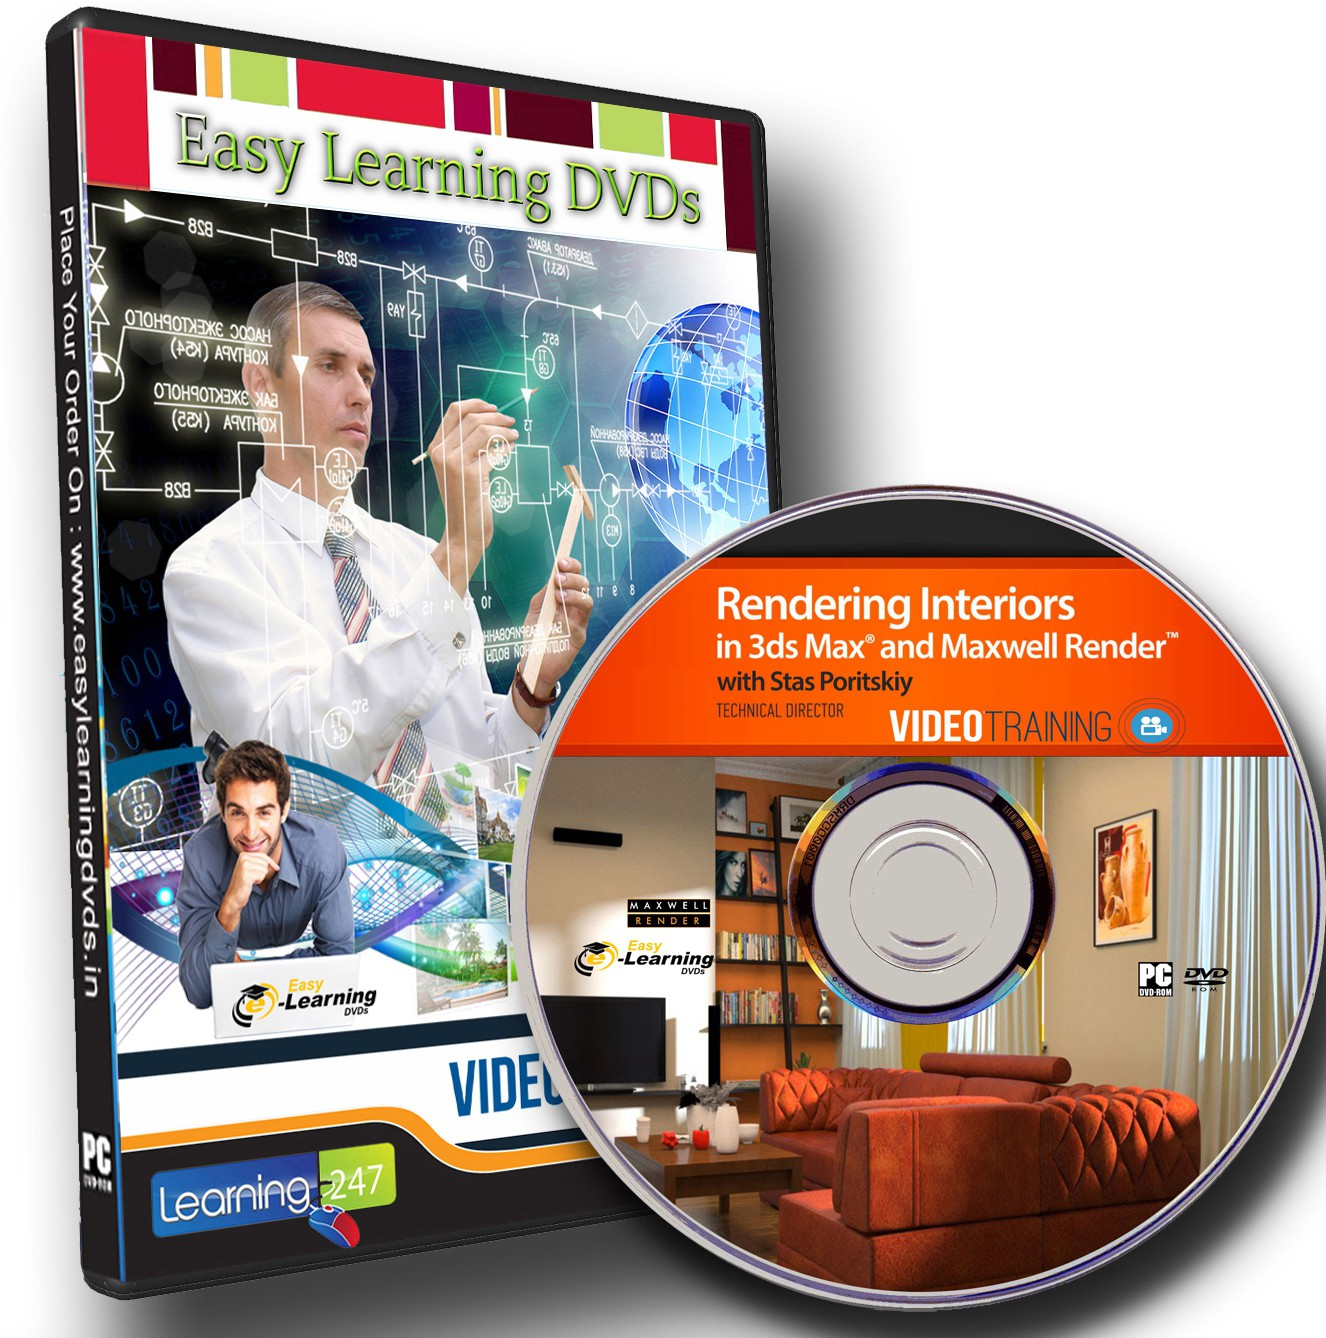 Easylearning Rendering Interiors In 3ds Max And Maxwell Render Video Training Dvd(DVD)